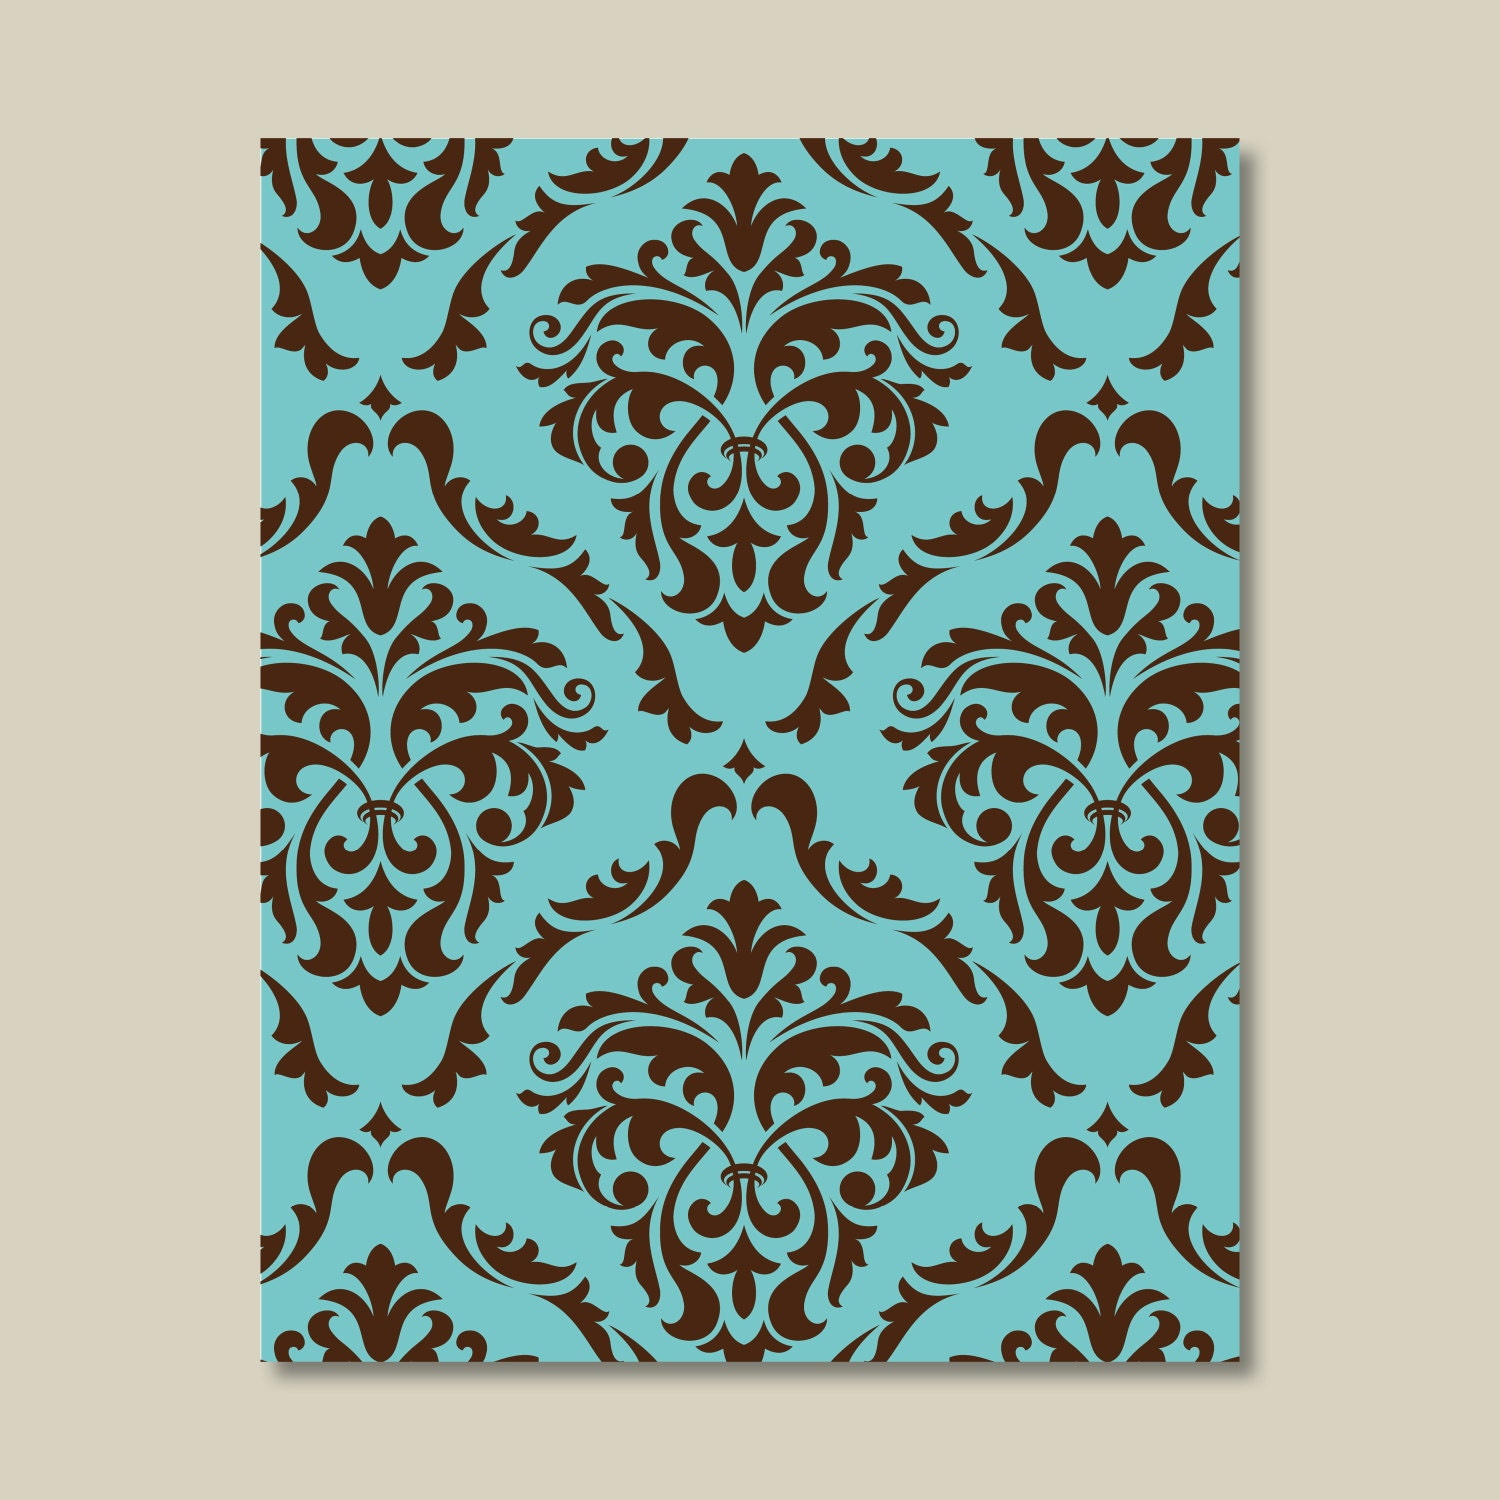 teal blue and brown damask print single home decor wall etsy. Black Bedroom Furniture Sets. Home Design Ideas